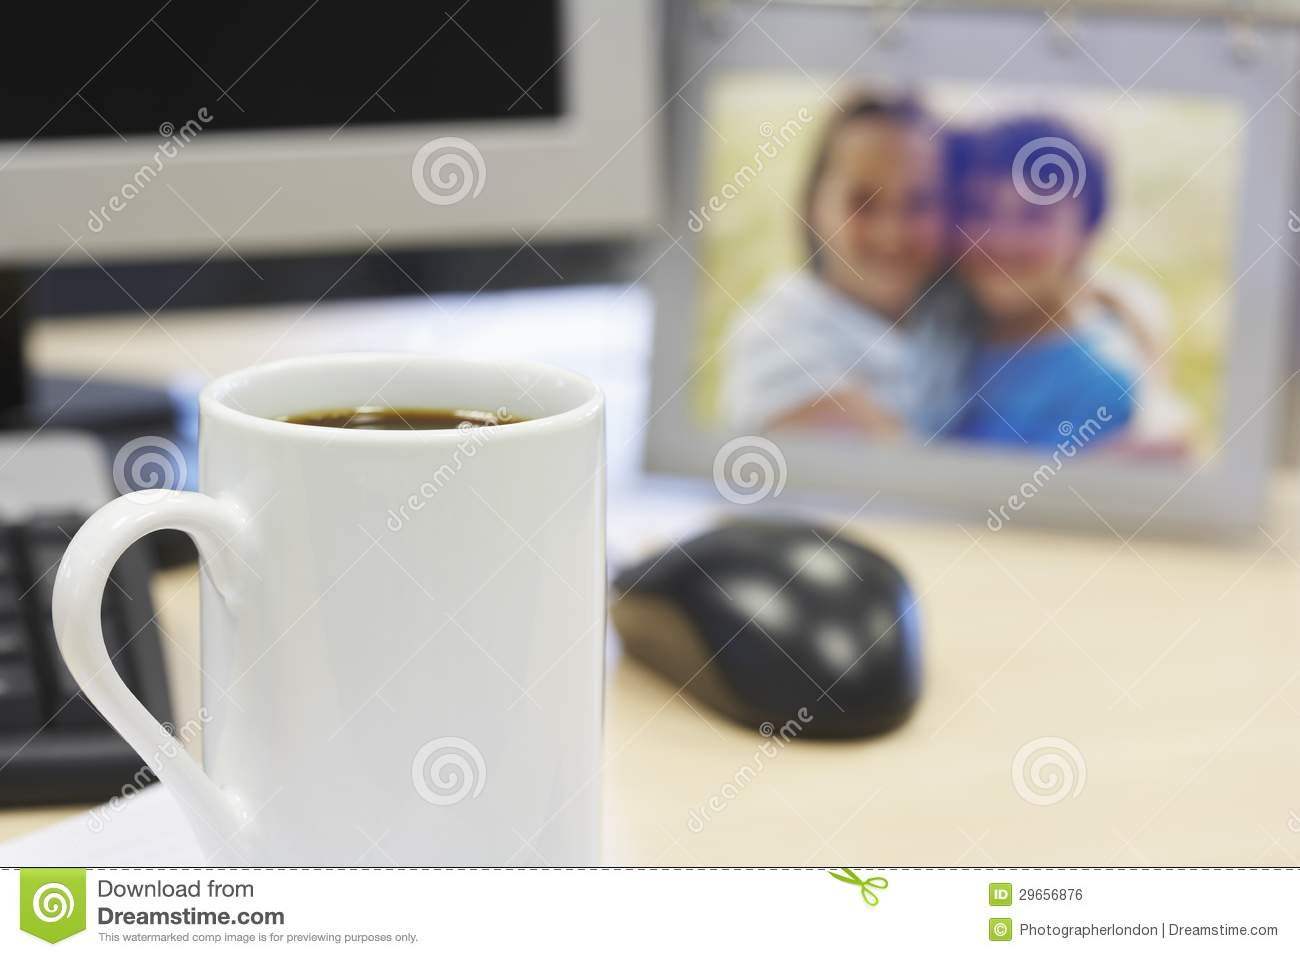 Coffee Mug On Table With Family Photo Royalty Free Stock